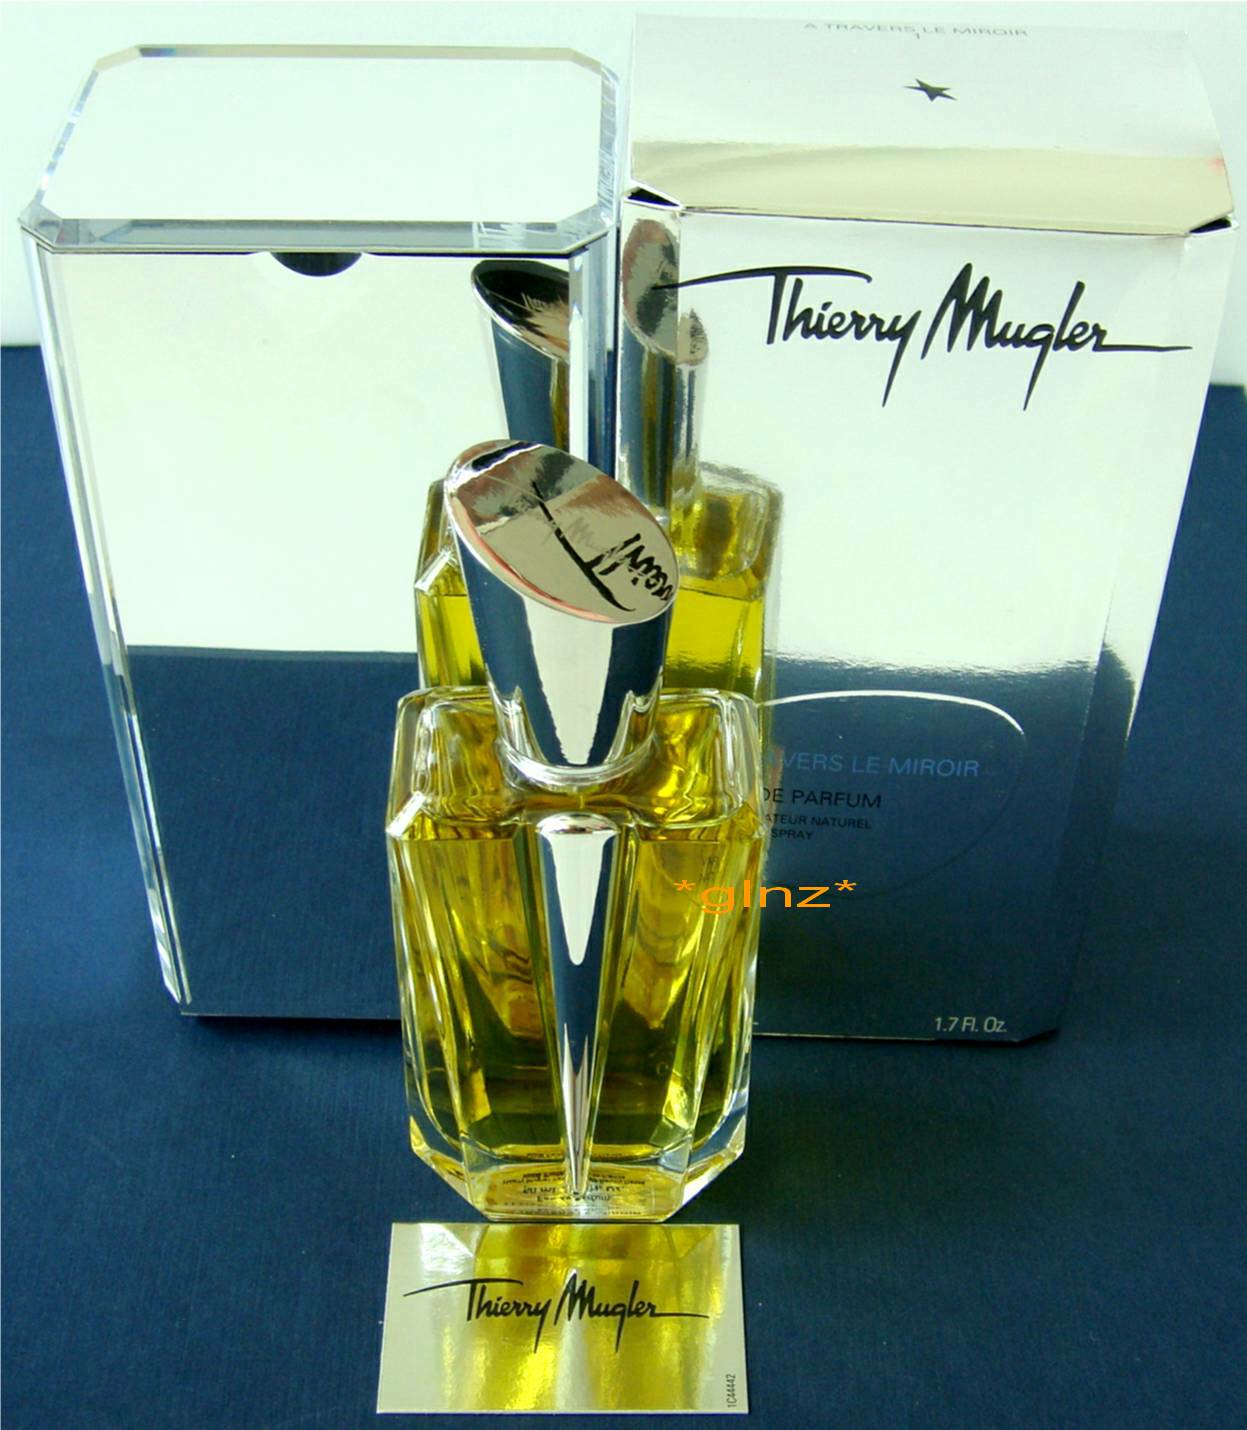 The perfume paradox worldofbeautytips for Thierry mugler a travers le miroir